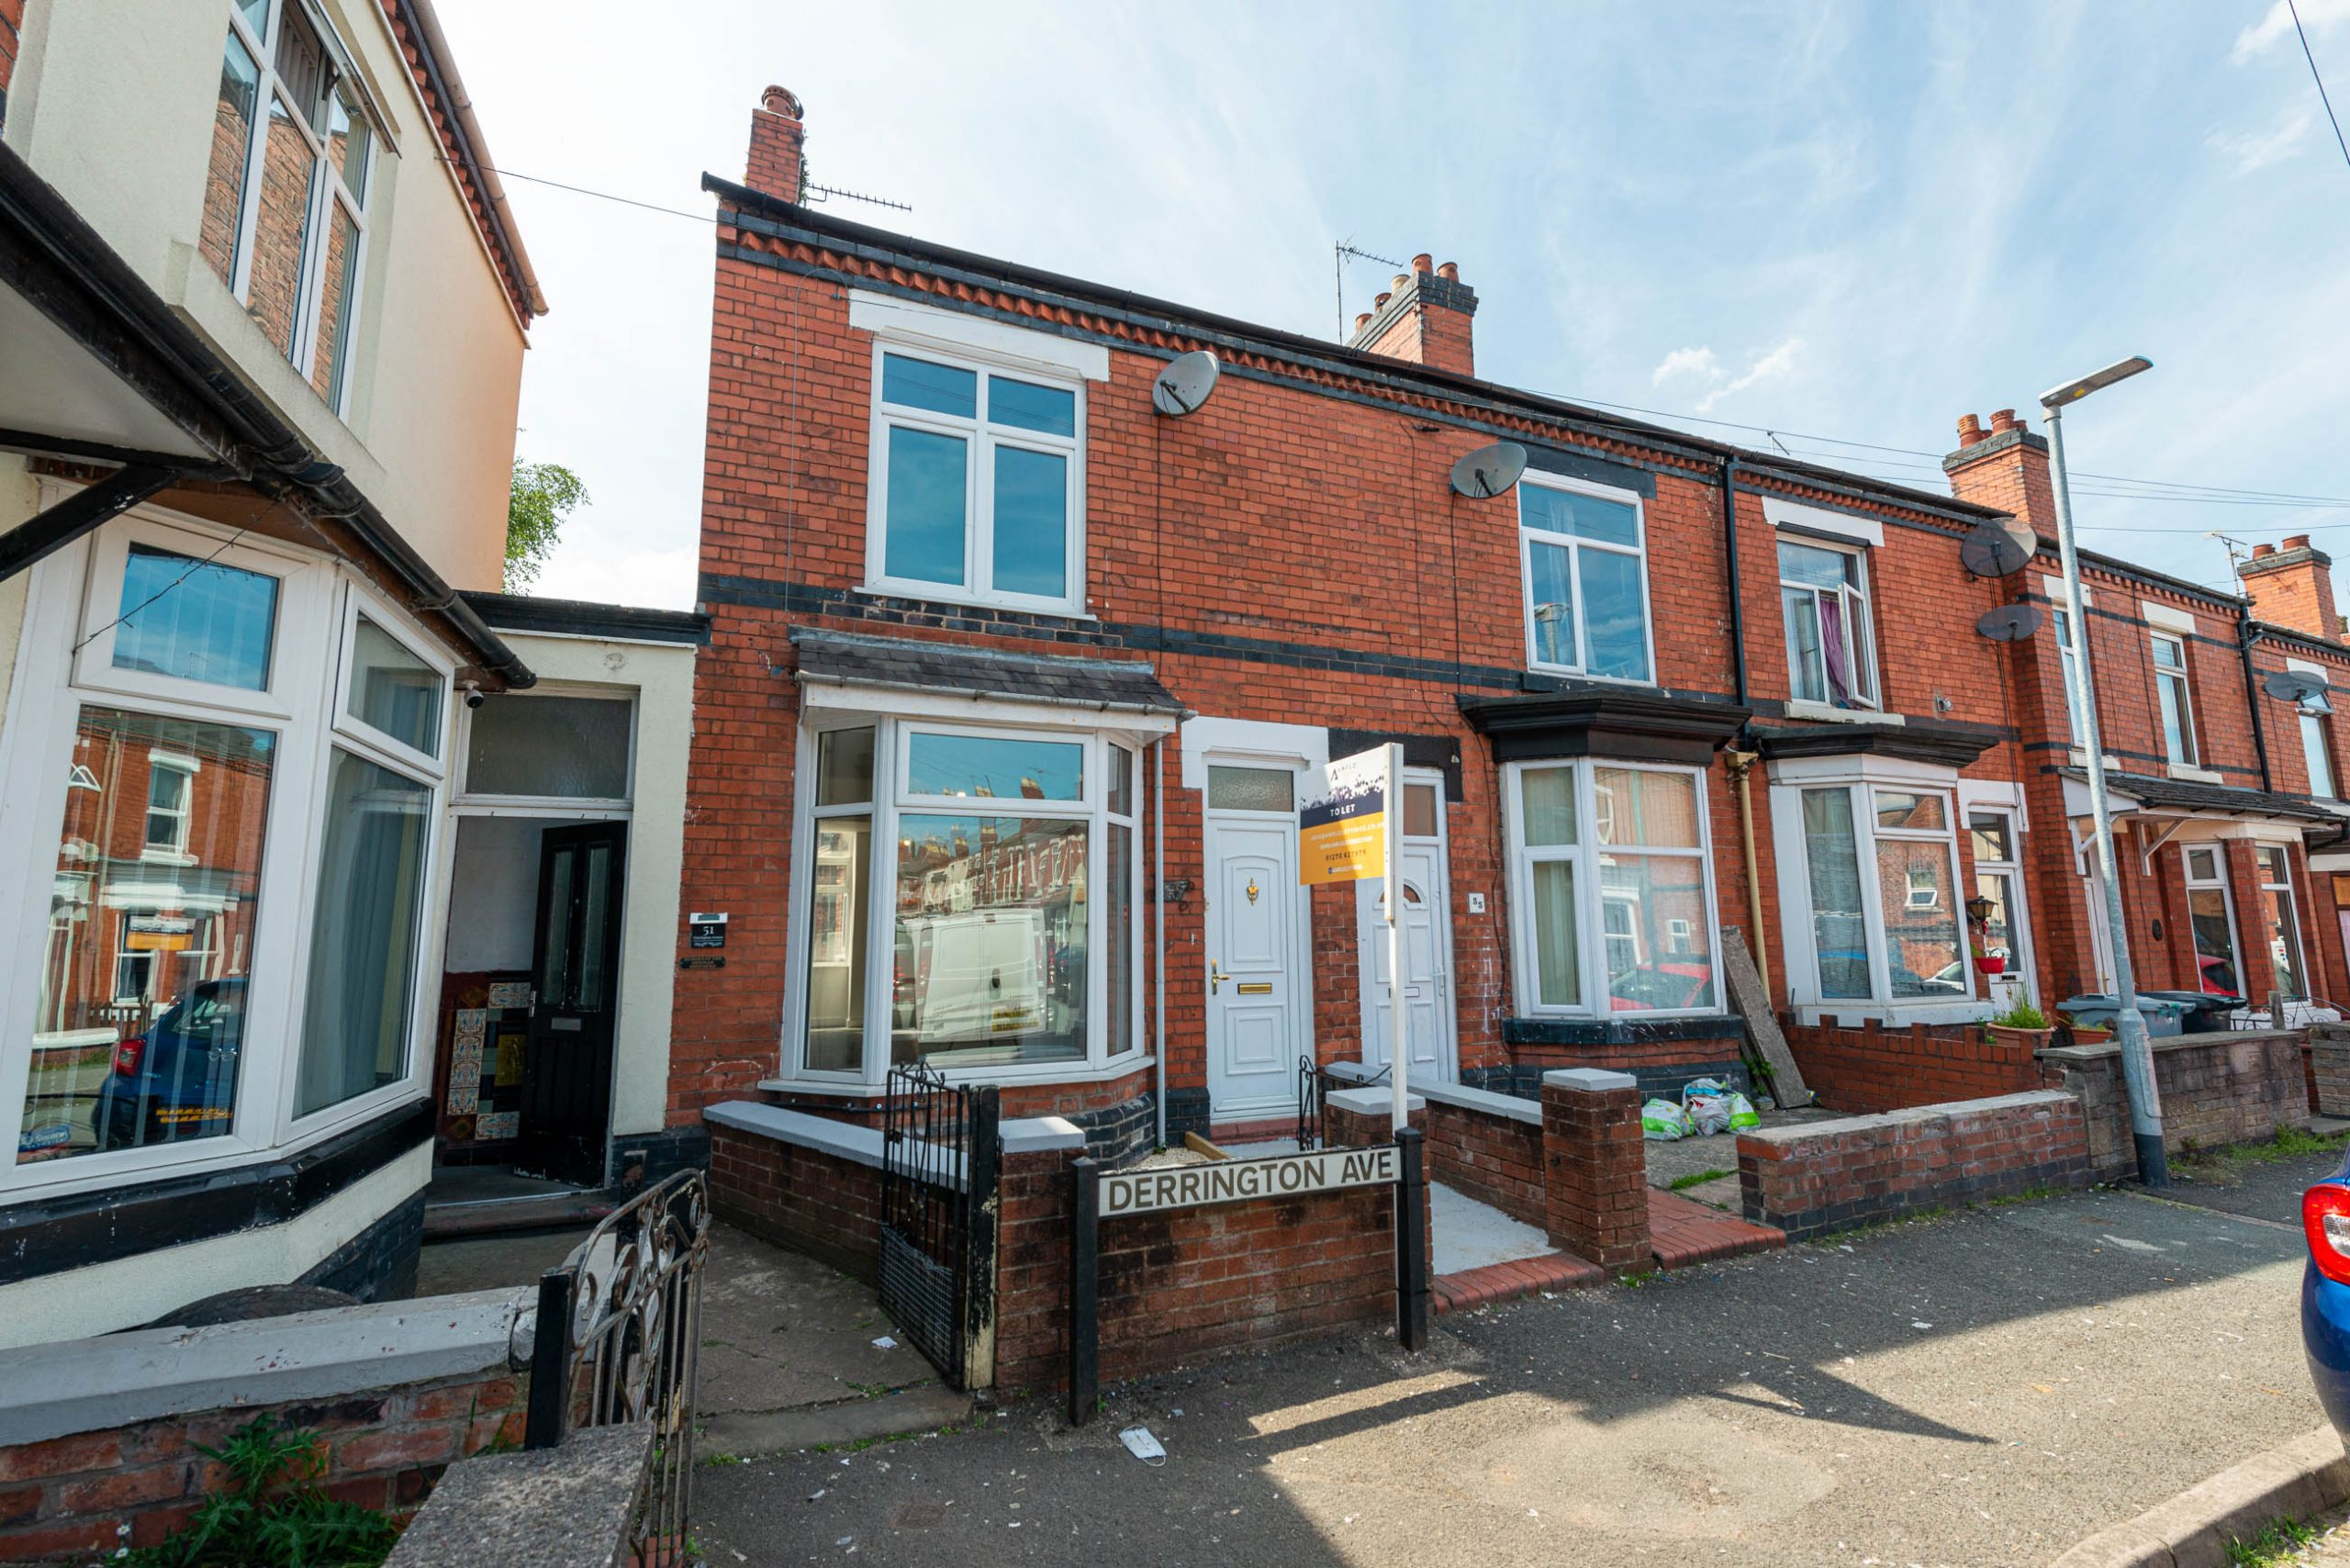 Amplo Lettings   Property Management Crewe   Letting Agents Crewe   HMO Management Crewe   House to Rent Crewe